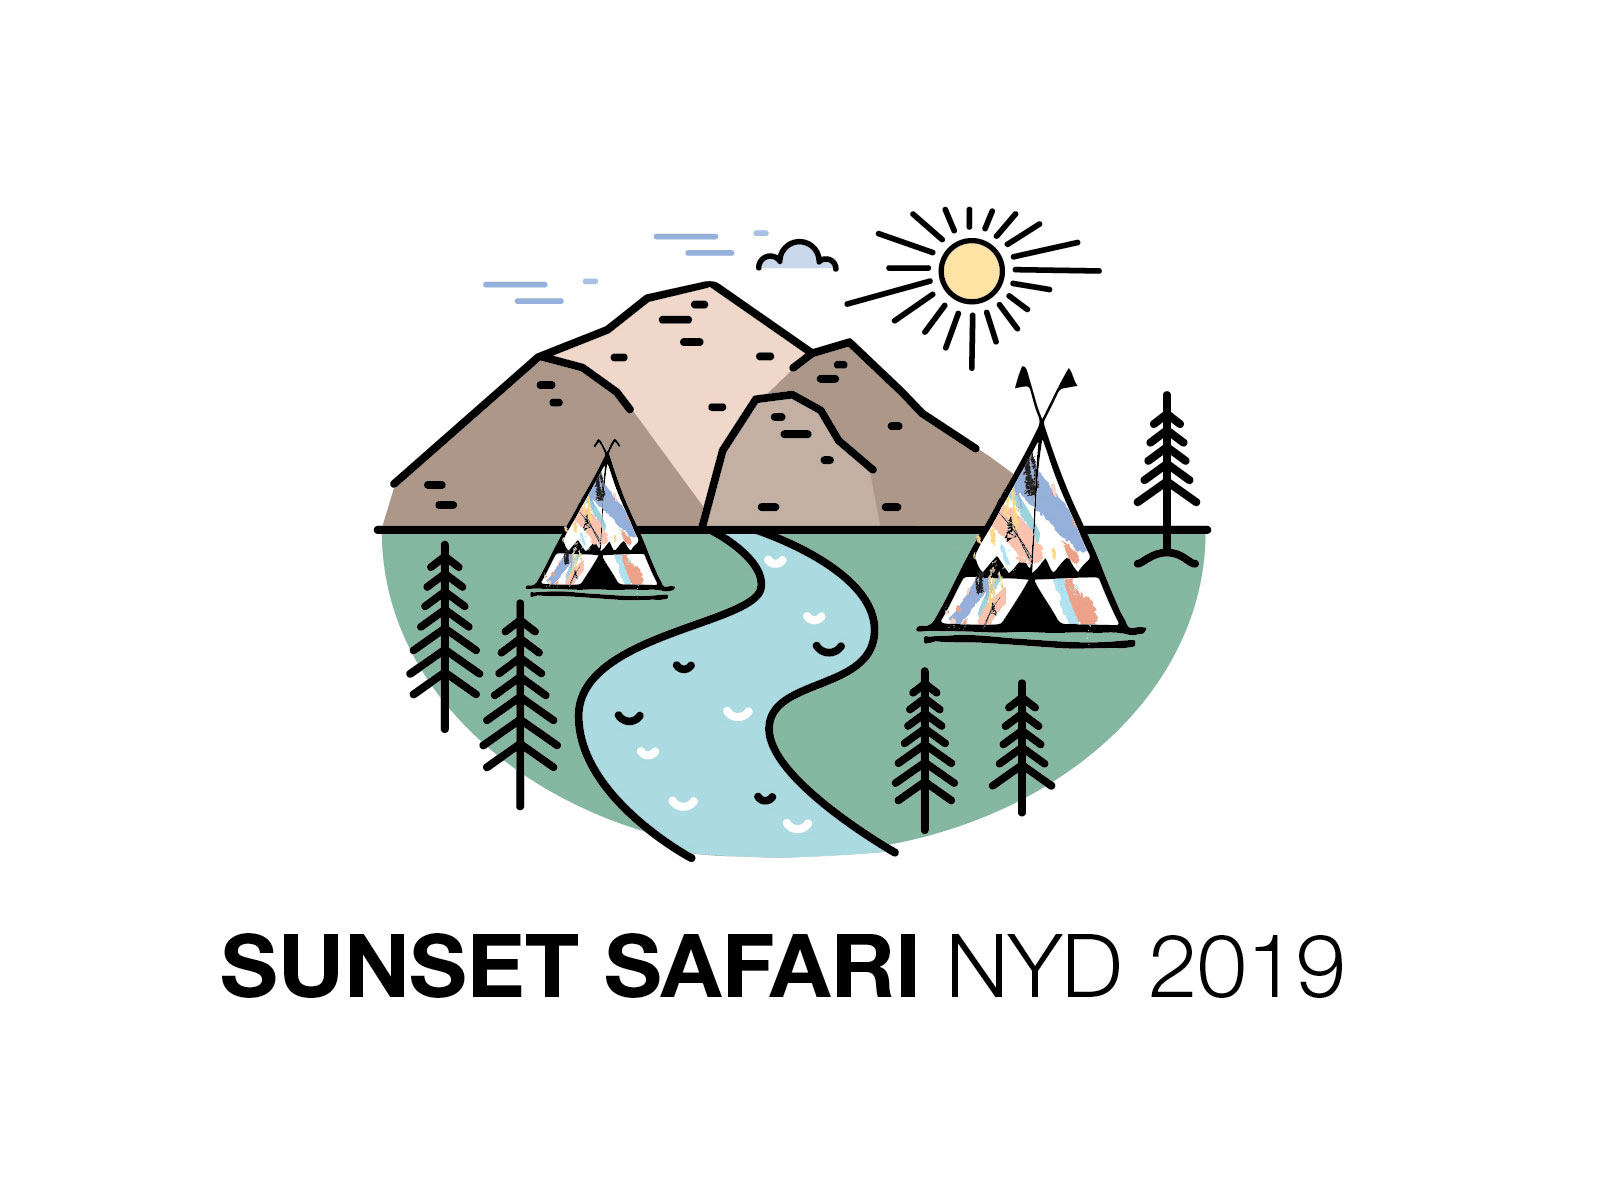 sunset-safari-nyd-2019-oz-edm-feature